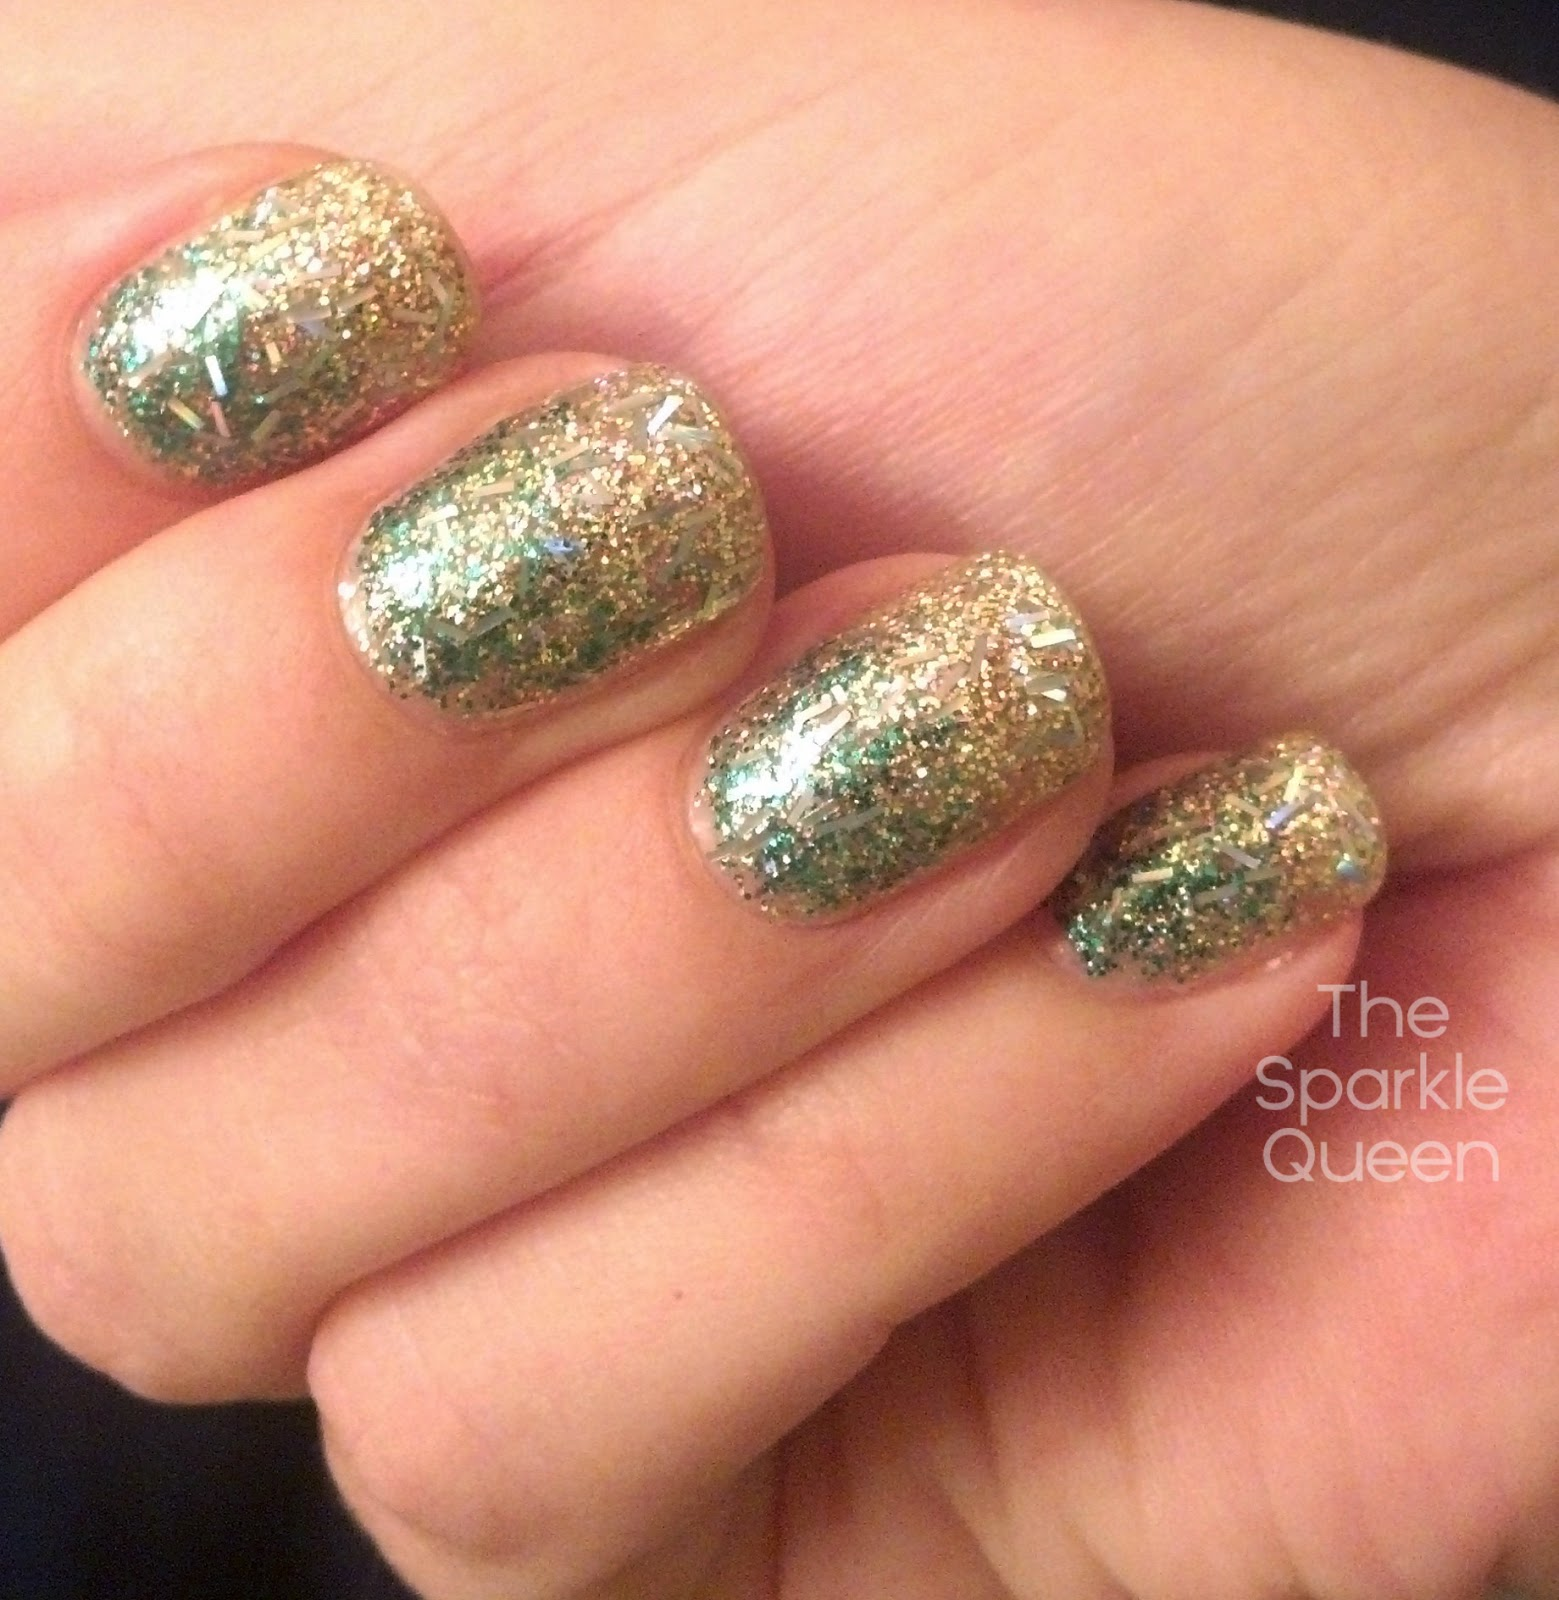 Christmas glitter gradient nail art a sparkly life for me i used a green glitter actually labeled green glitter no clue where i picked it up a gold glitter from color club with no name and a holo bar prinsesfo Gallery